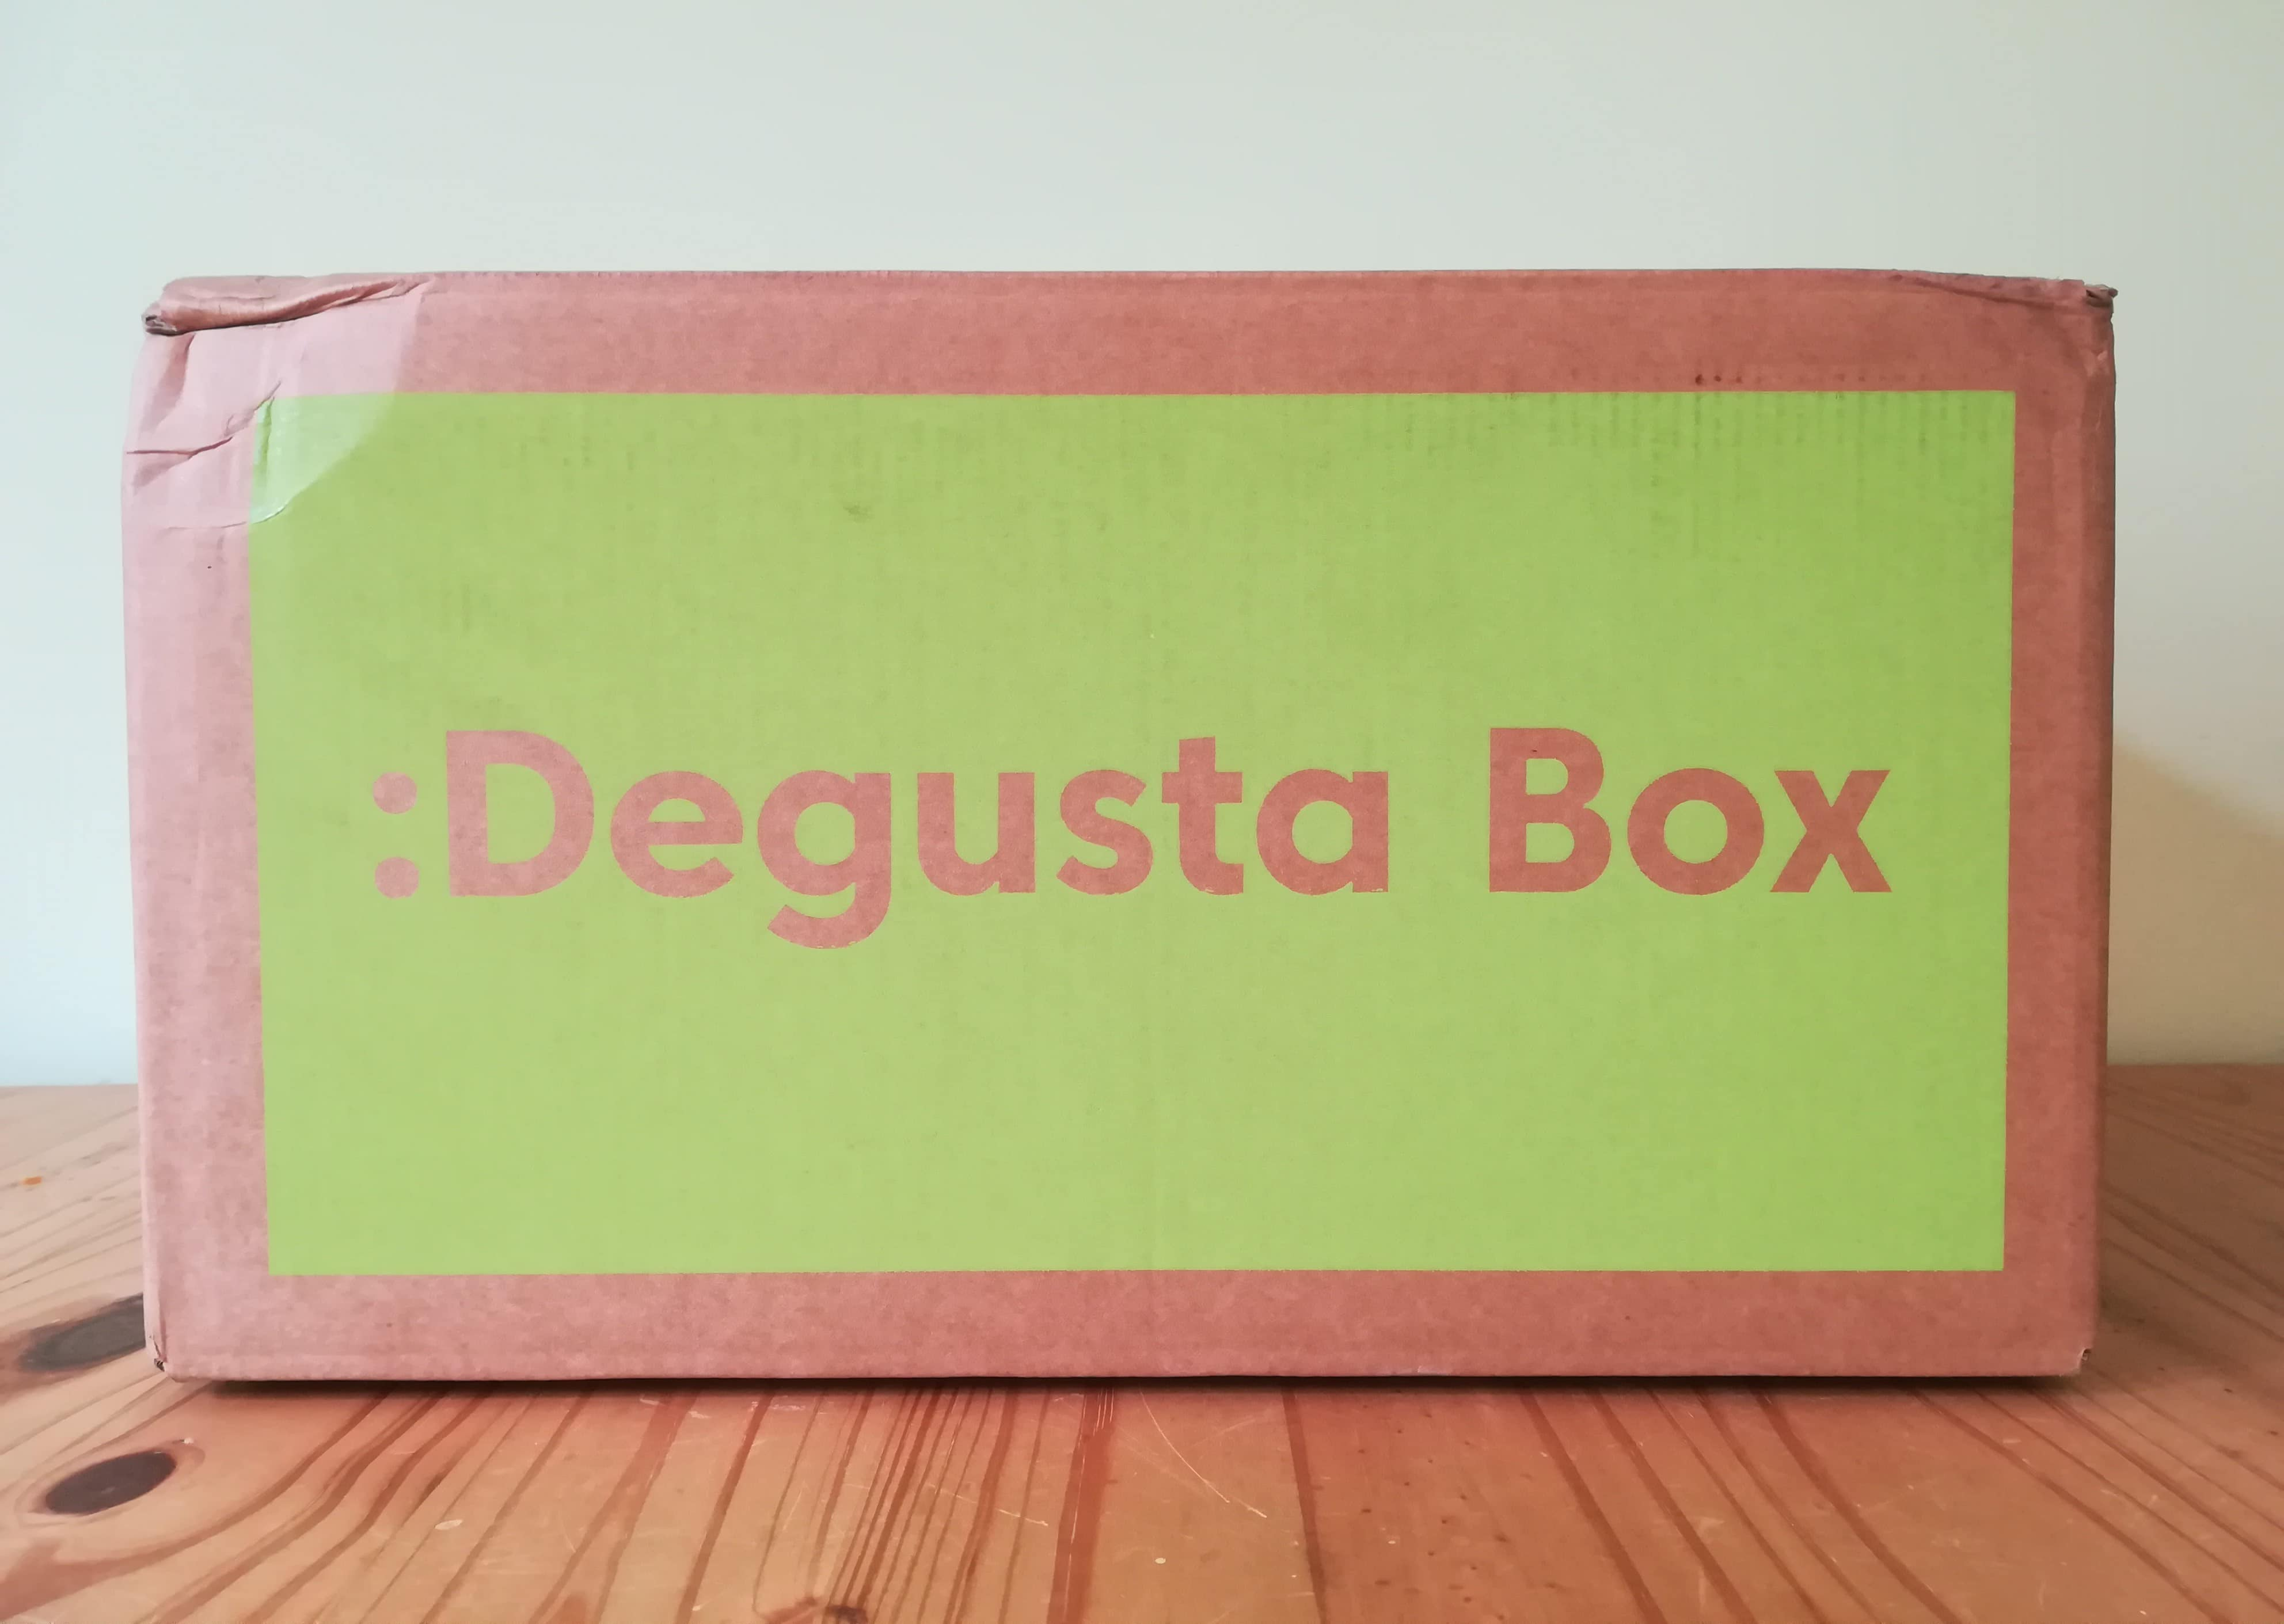 DegustaBox UK October 2019 Subscription Box Review + Coupon!